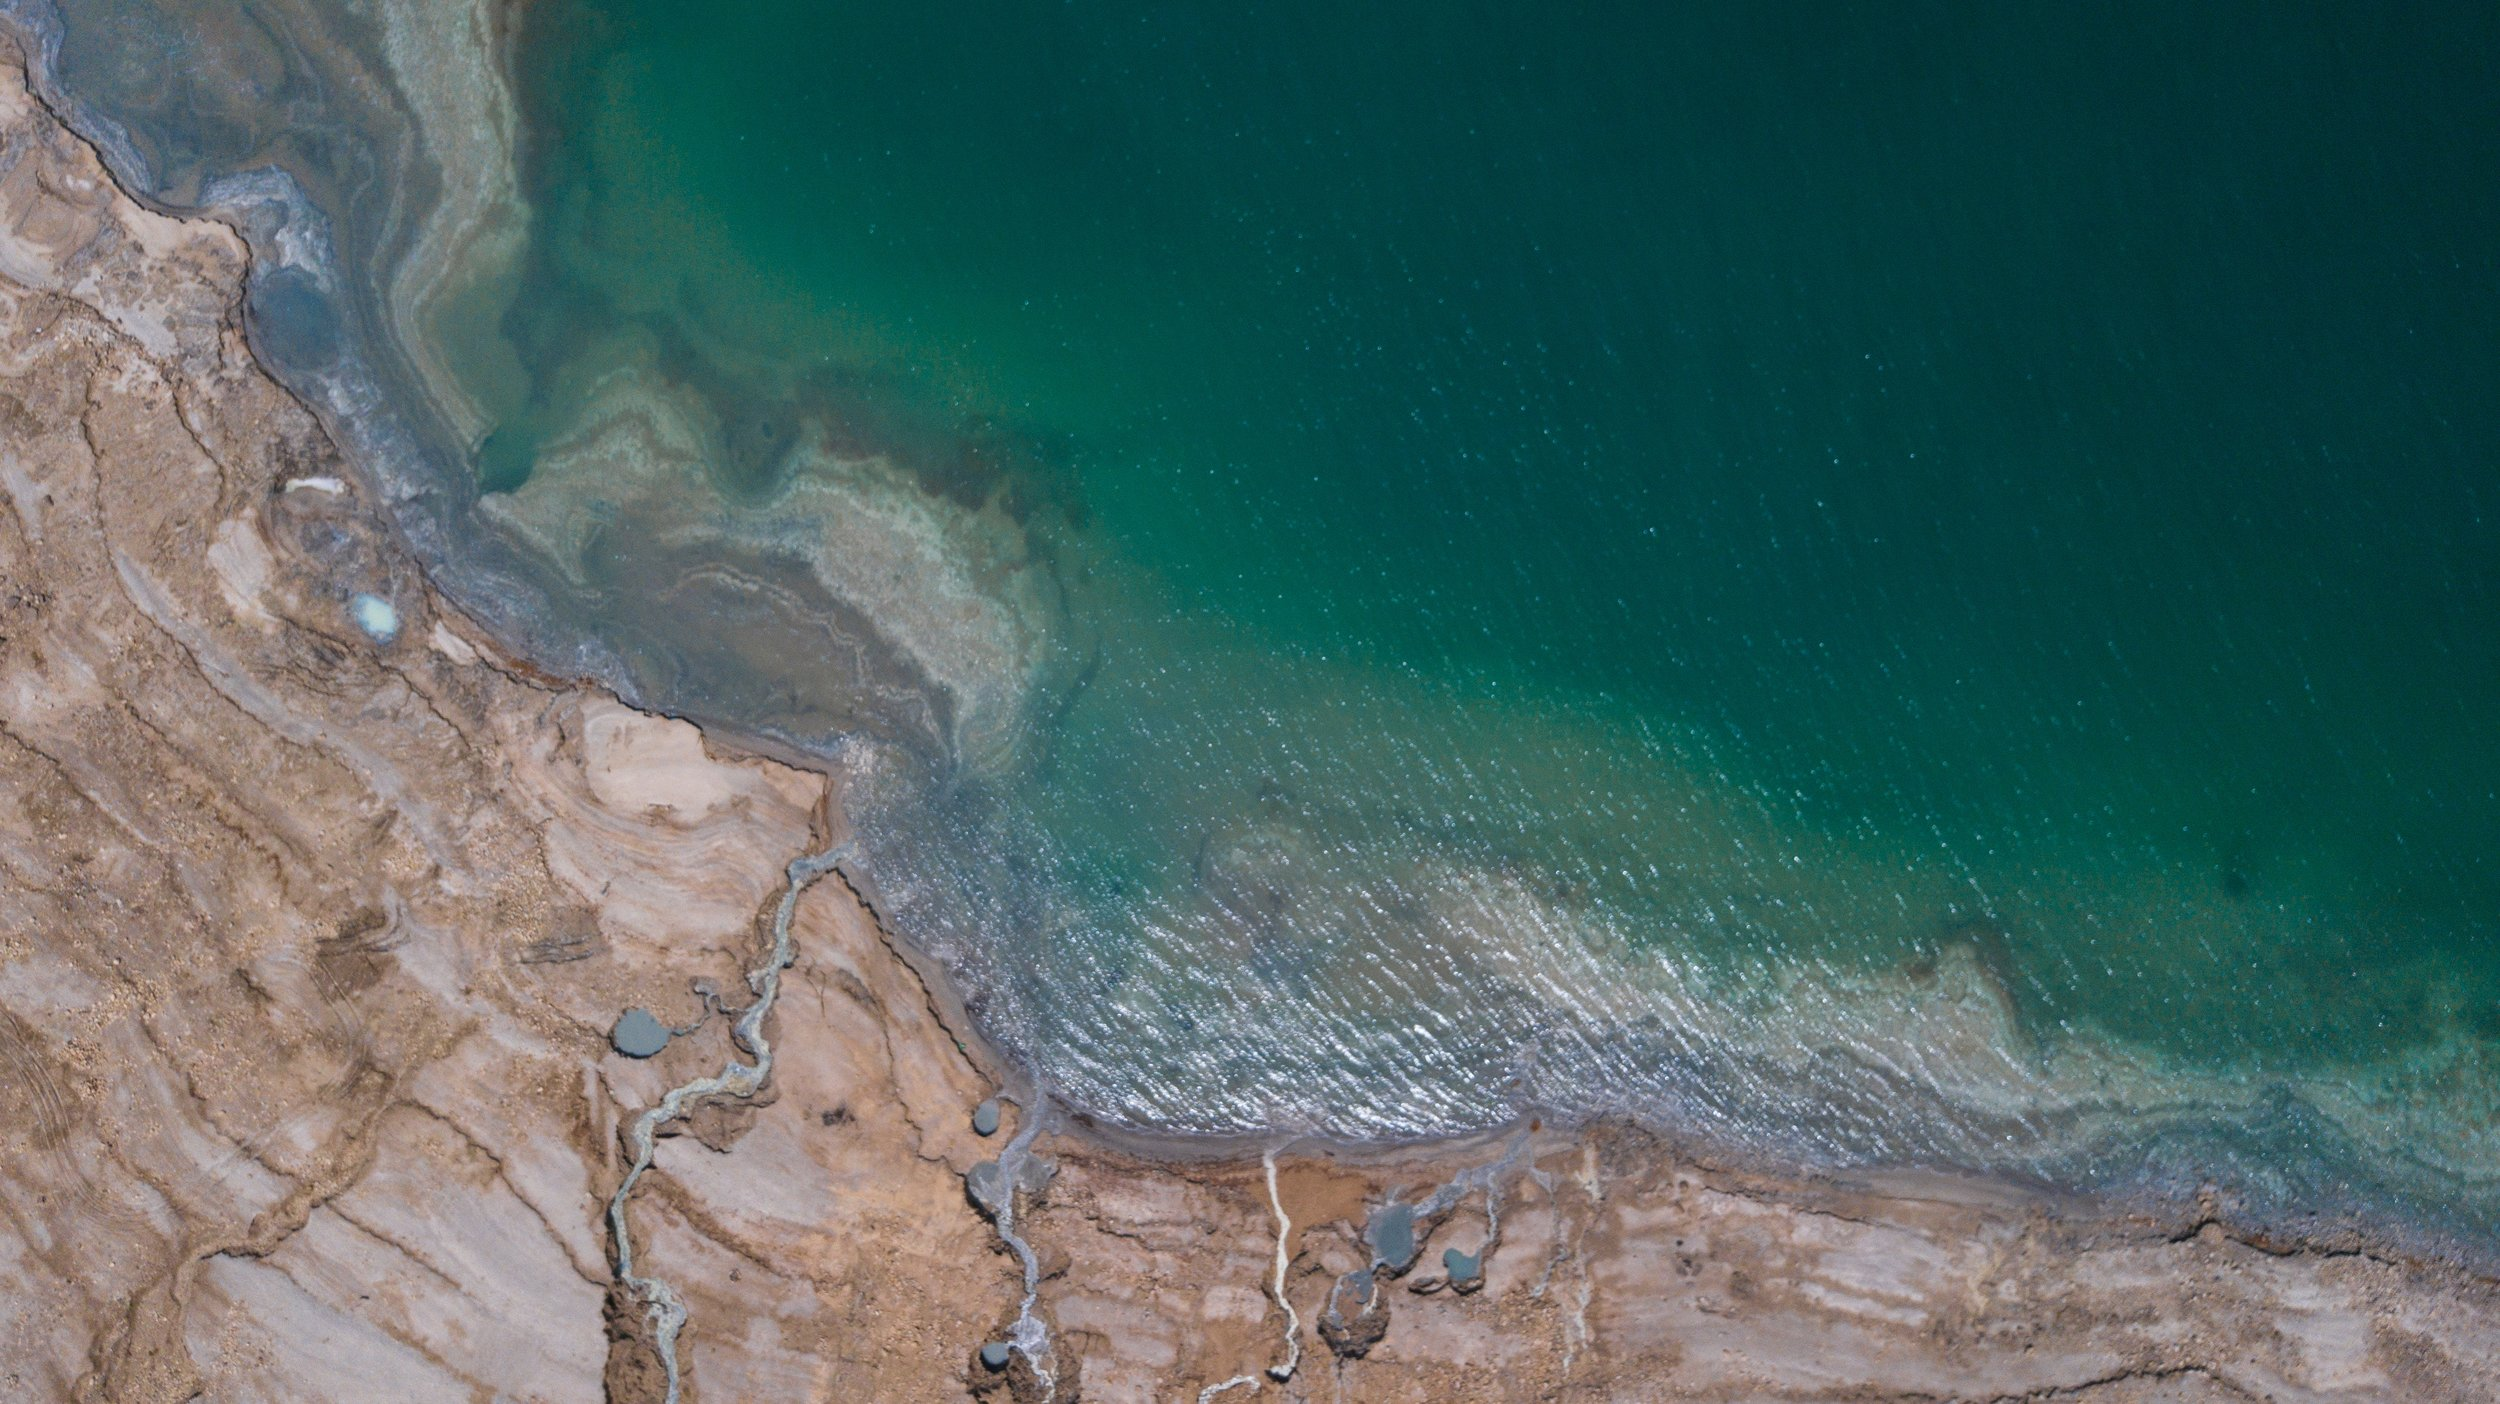 Aerial view of the Dead Sea